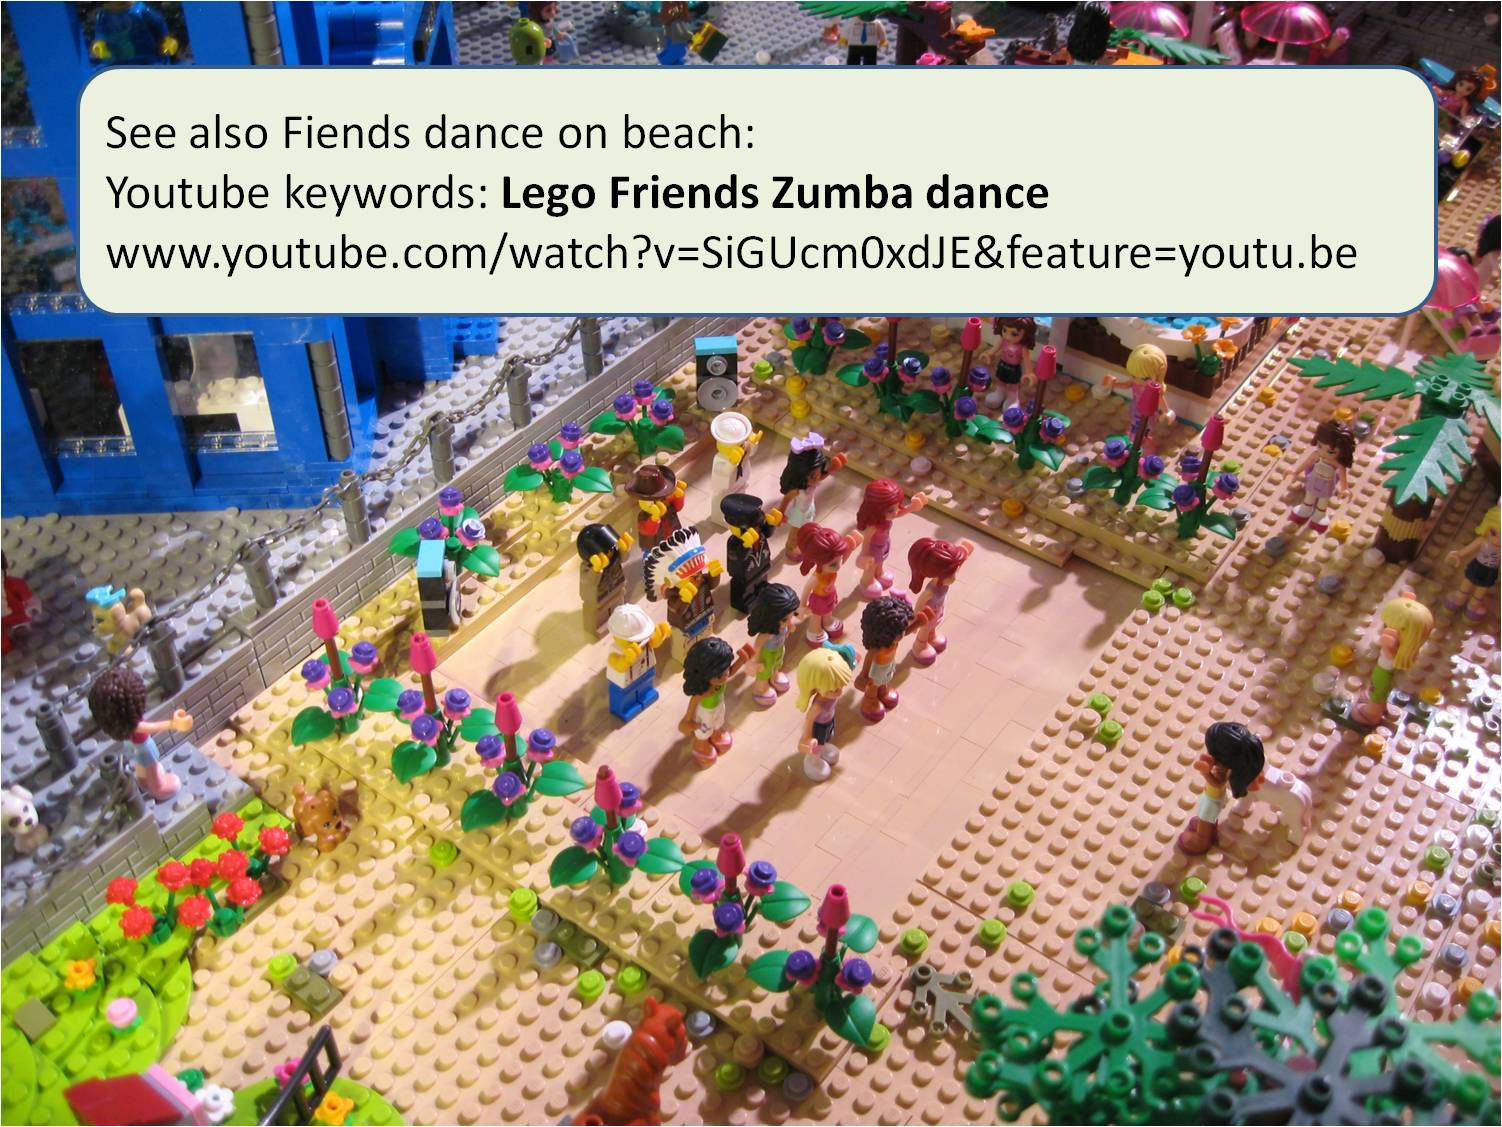 friends_beach_zumba2.jpg